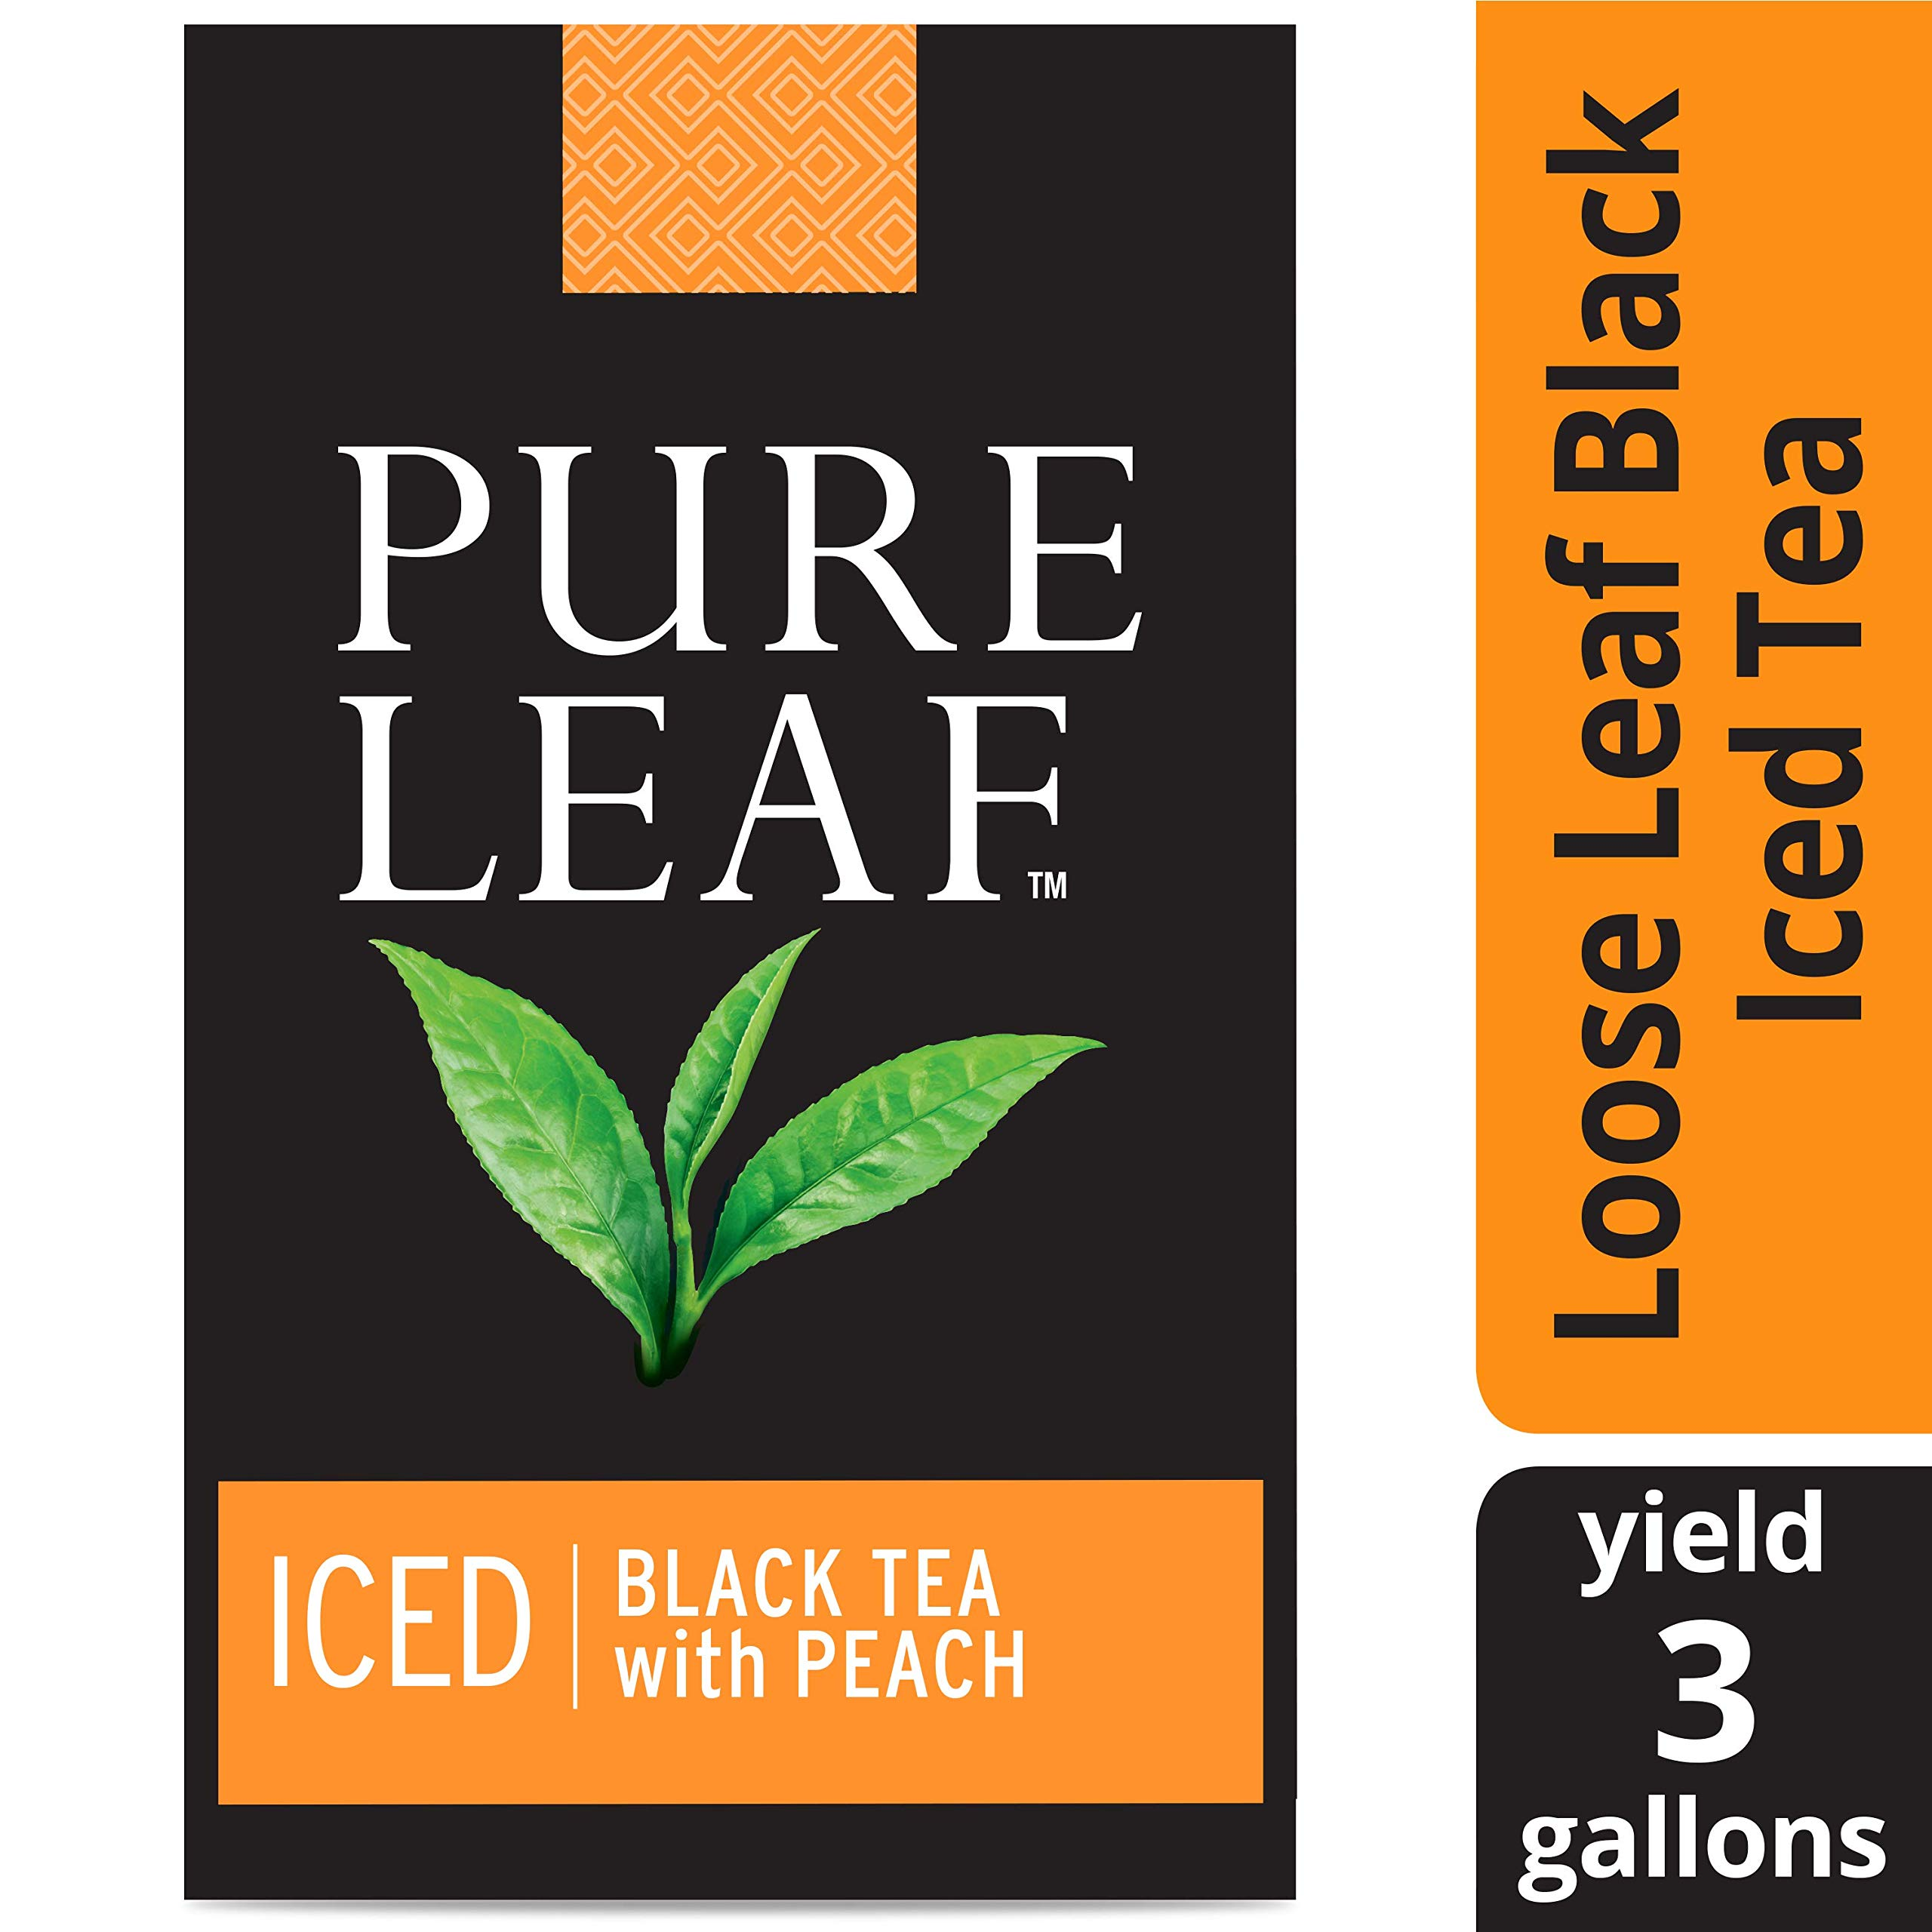 Pure Leaf Black with Peach Unsweetened Iced Loose Tea Pouch Made with Tea Leaves Sourced from Rainforest Alliance Certified Farms, 3 gallon, Pack of 24 by Pure Leaf